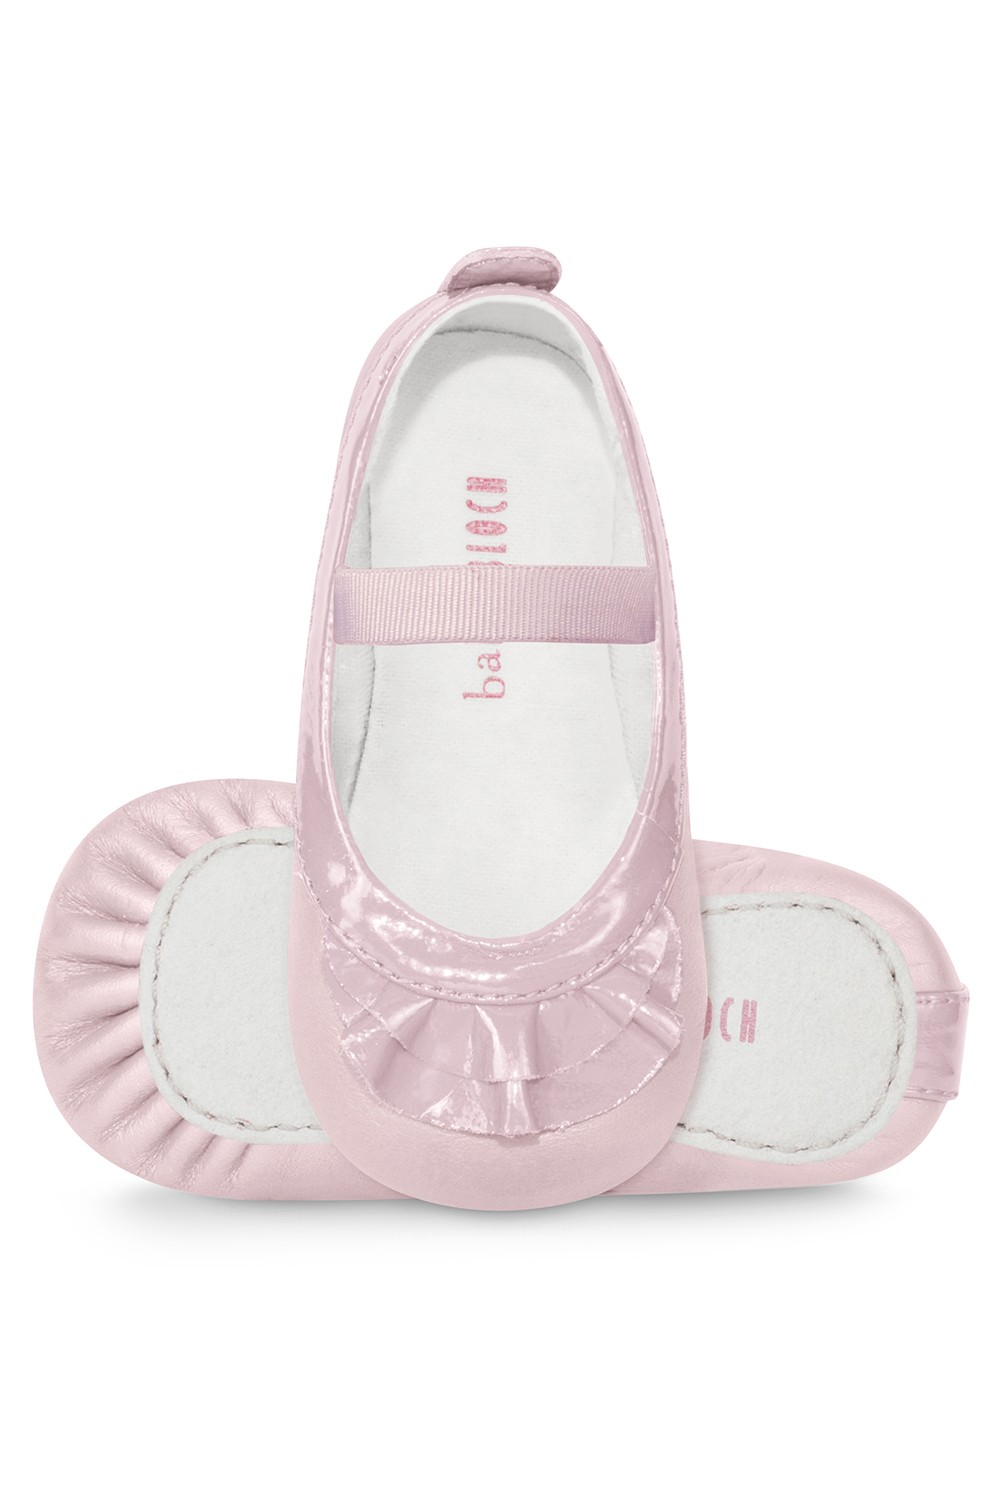 Frilled Pearl Ballet Flat Babies Fashion Shoes